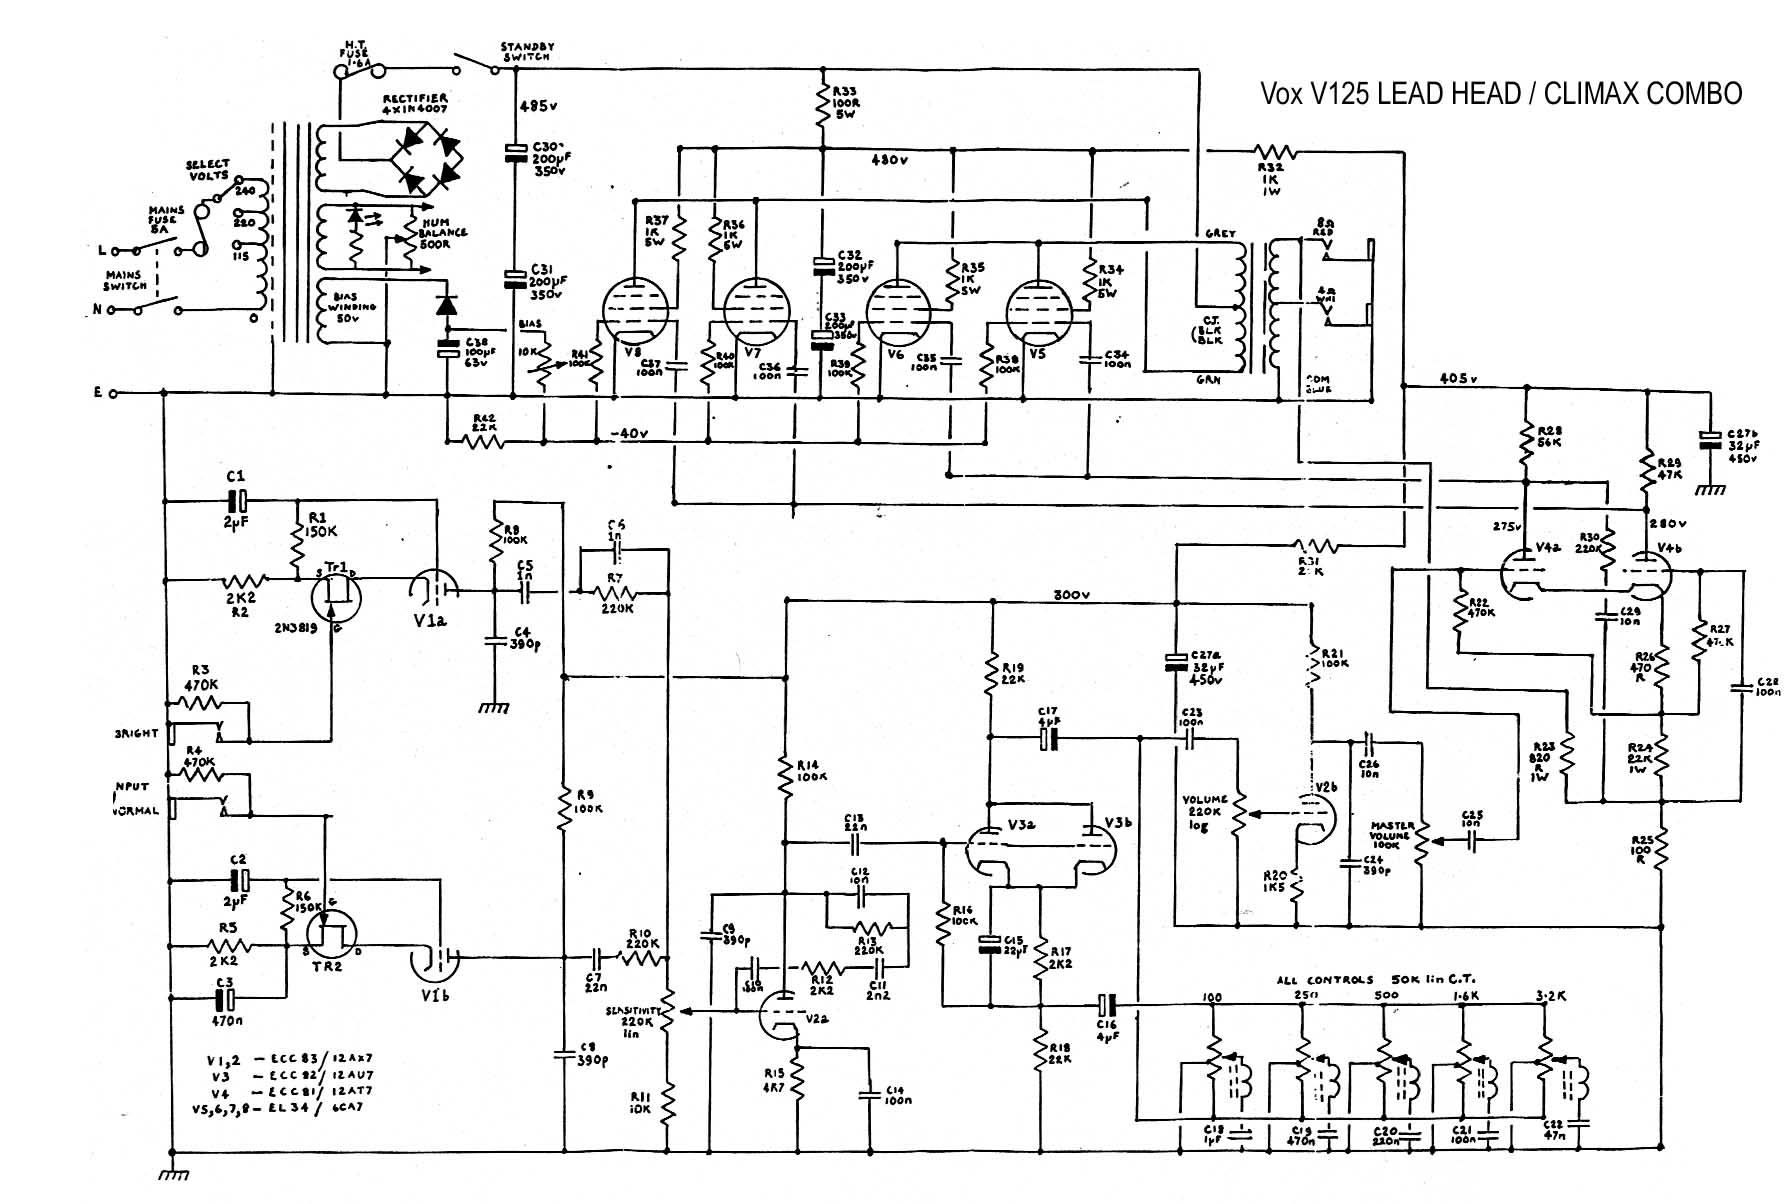 v125lead 64 ac10 wiring diagram parker ac10 software \u2022 wiring diagram  at soozxer.org